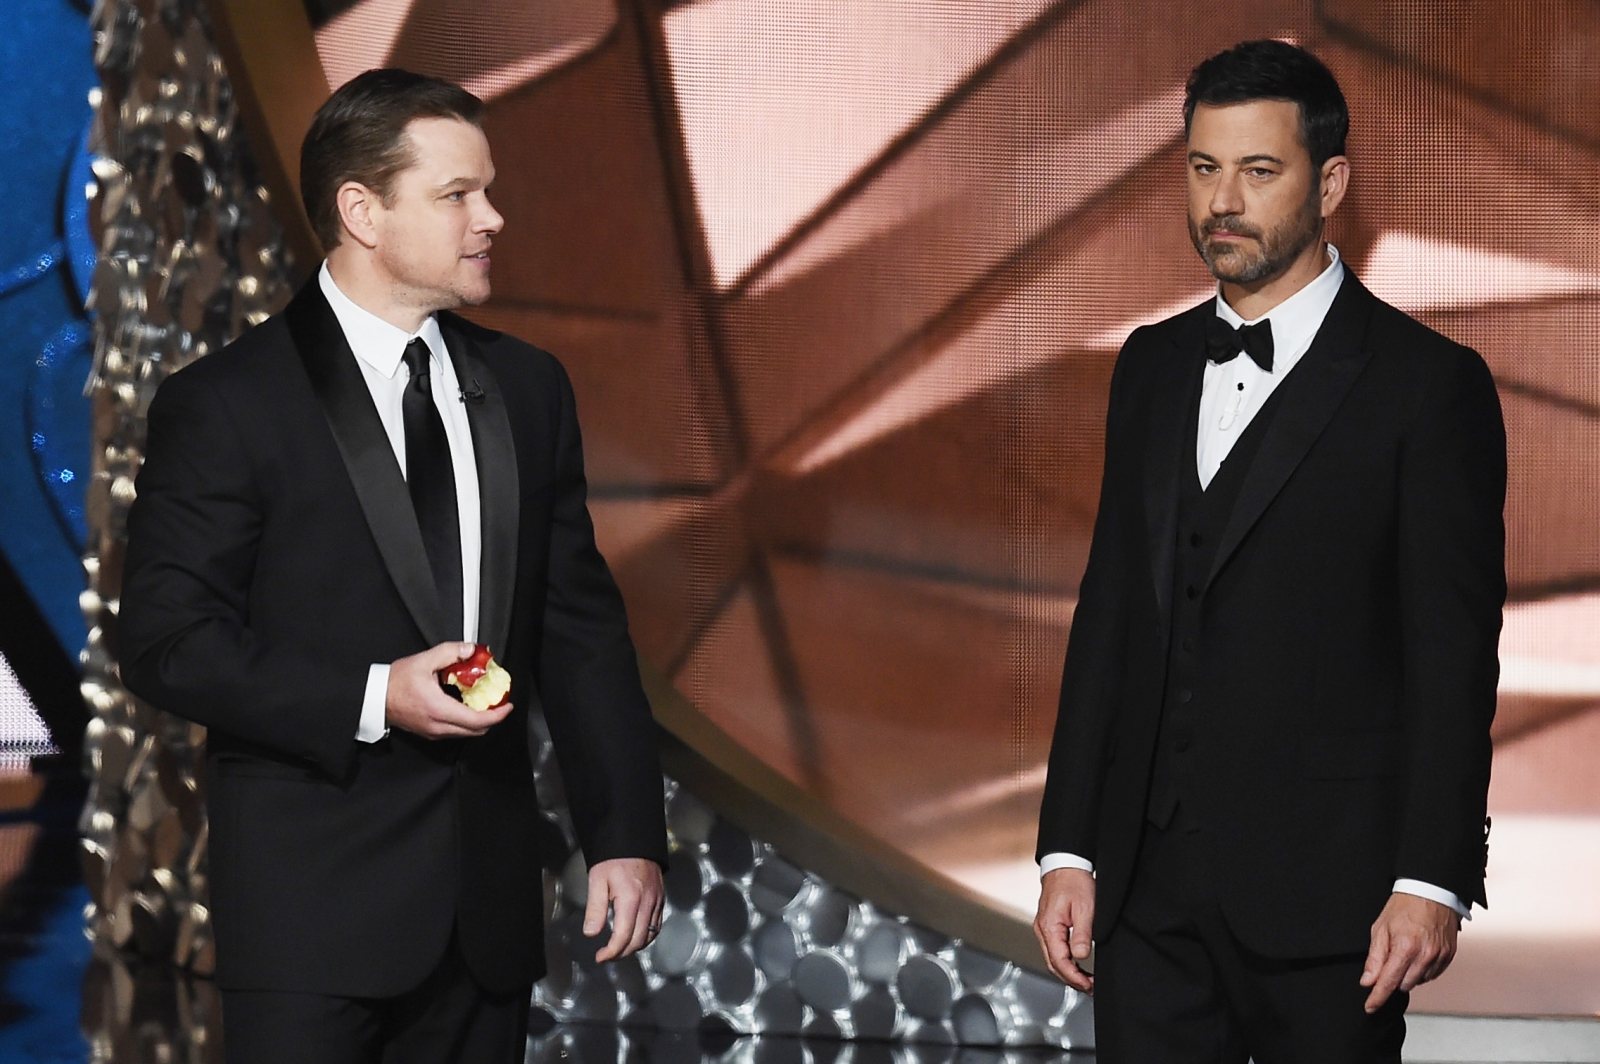 Matt Damon teases Jimmy Kimmel roast ahead of the Oscars ...